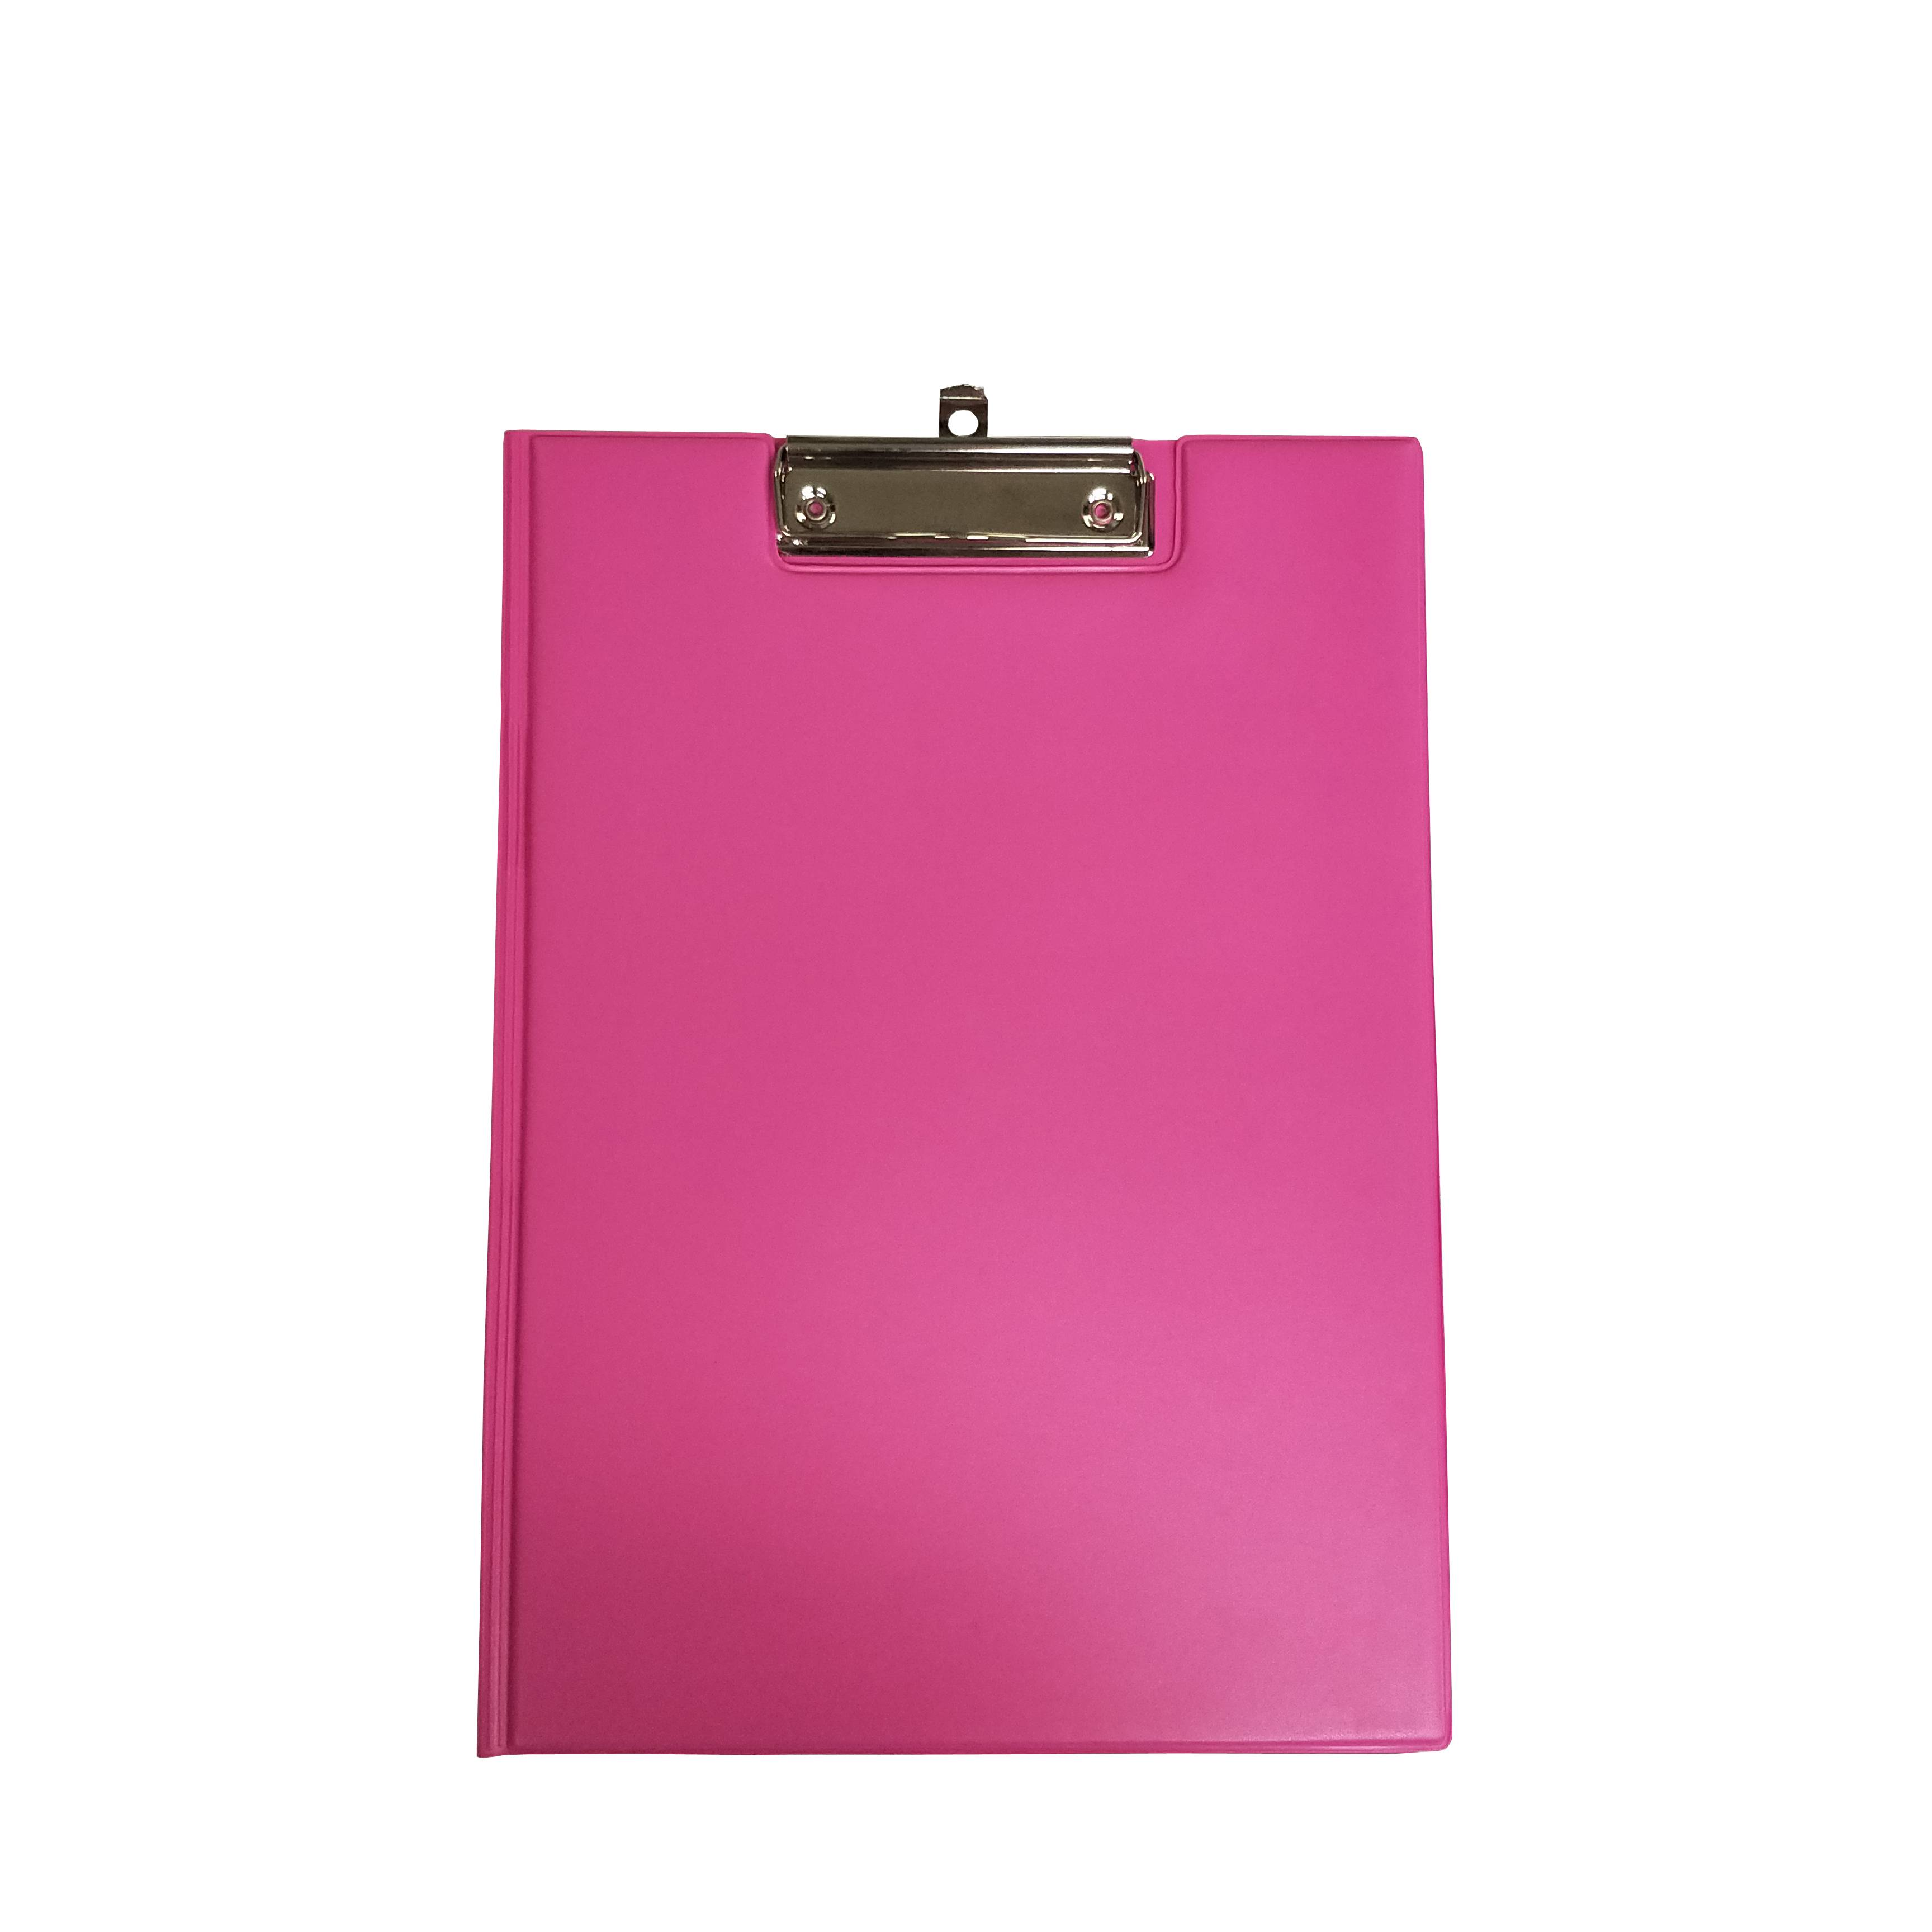 China Gold Supplier for PP Sheets from China -